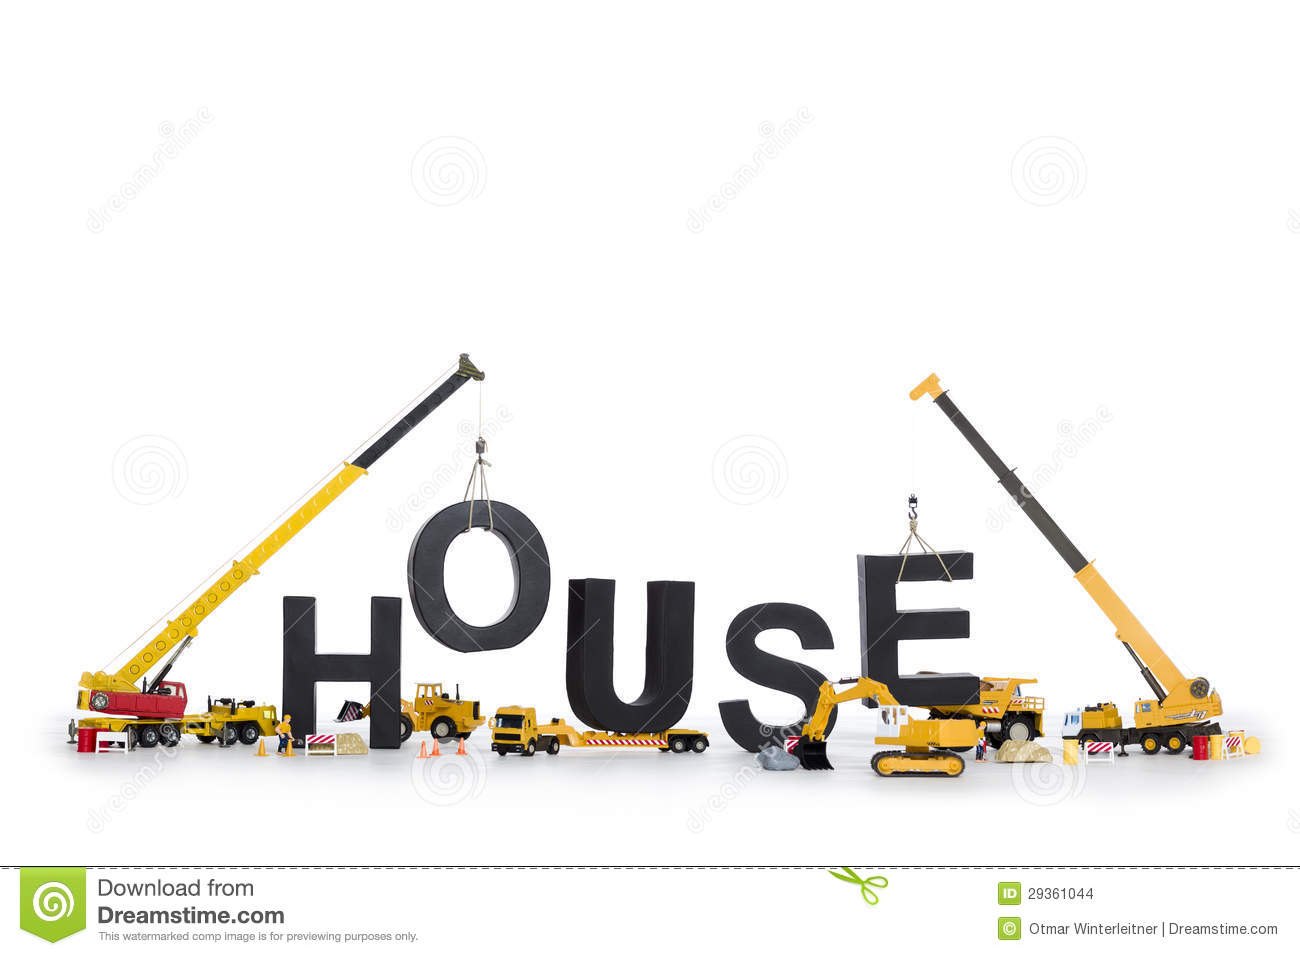 House Under Construction: Machines Building House- Stock Images ...